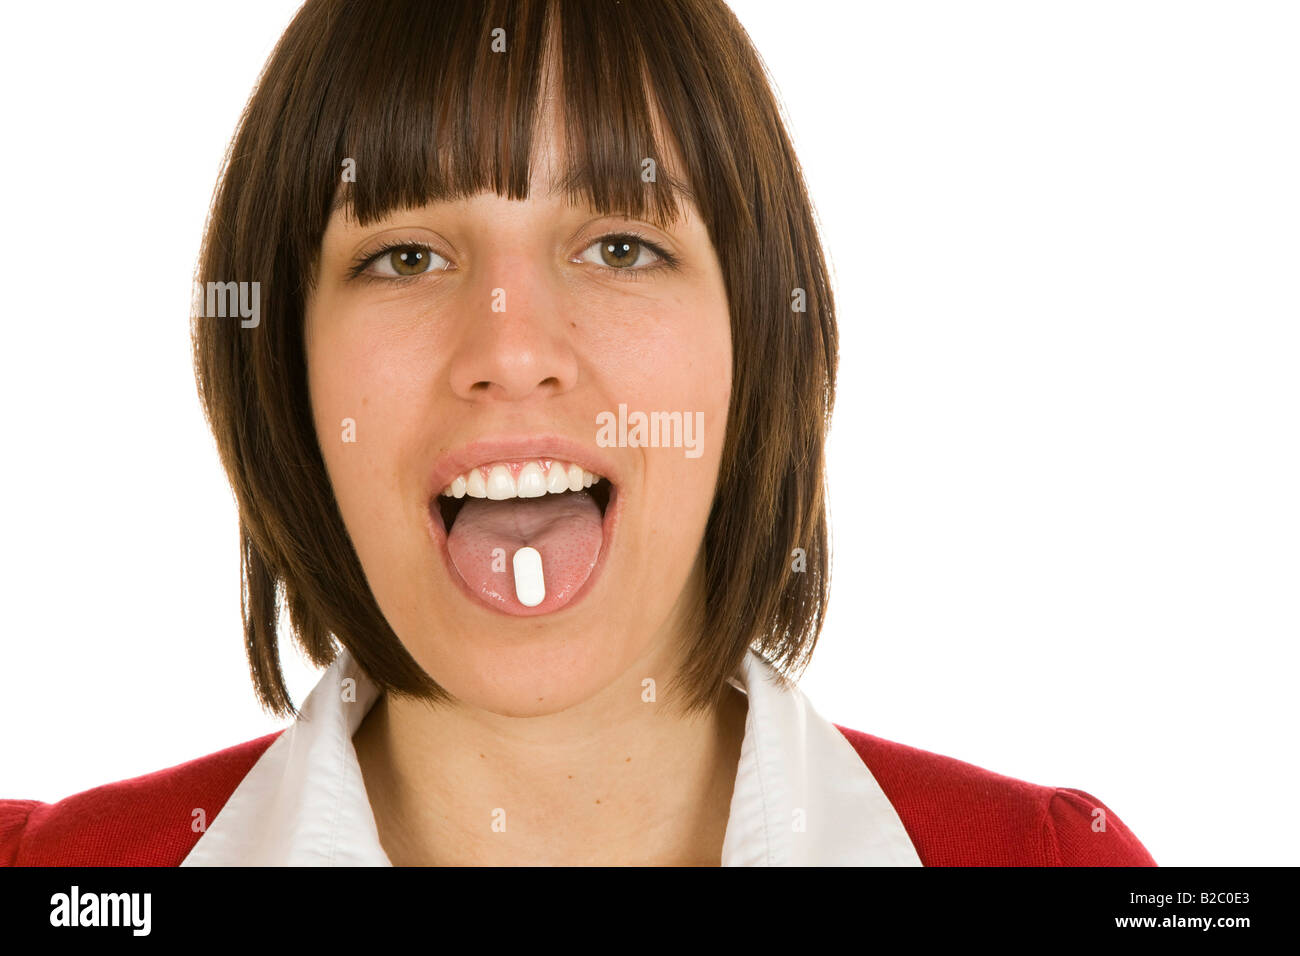 20-year-old woman with a tablet on her tounge Stock Photo